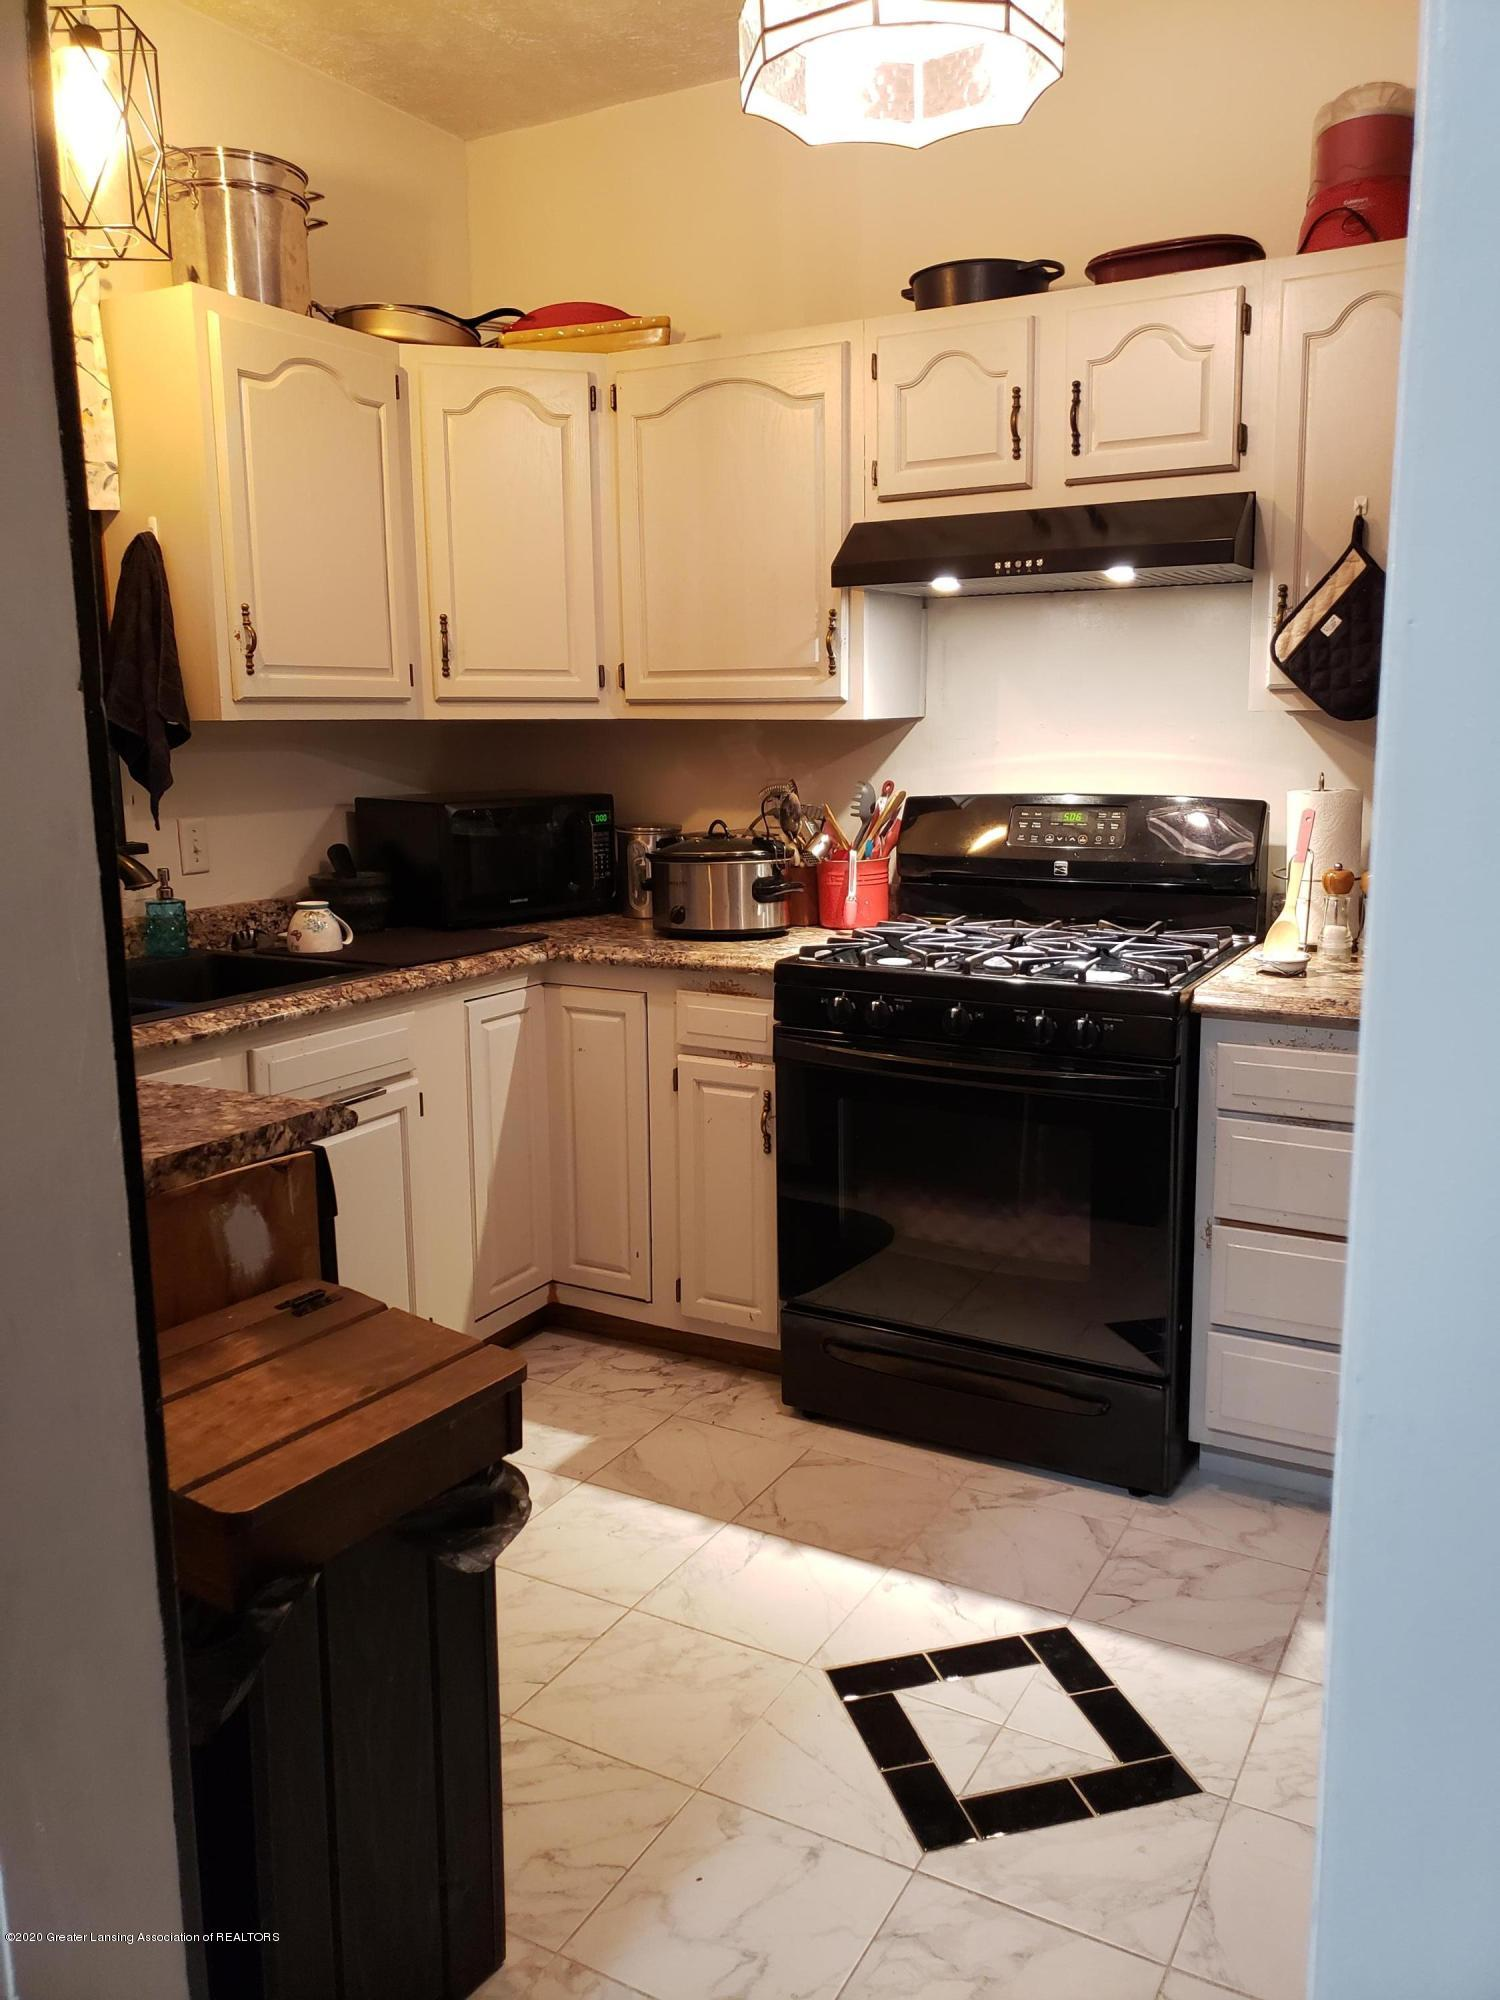 401 Lathrop St - 13 Kitchen (1) - 8